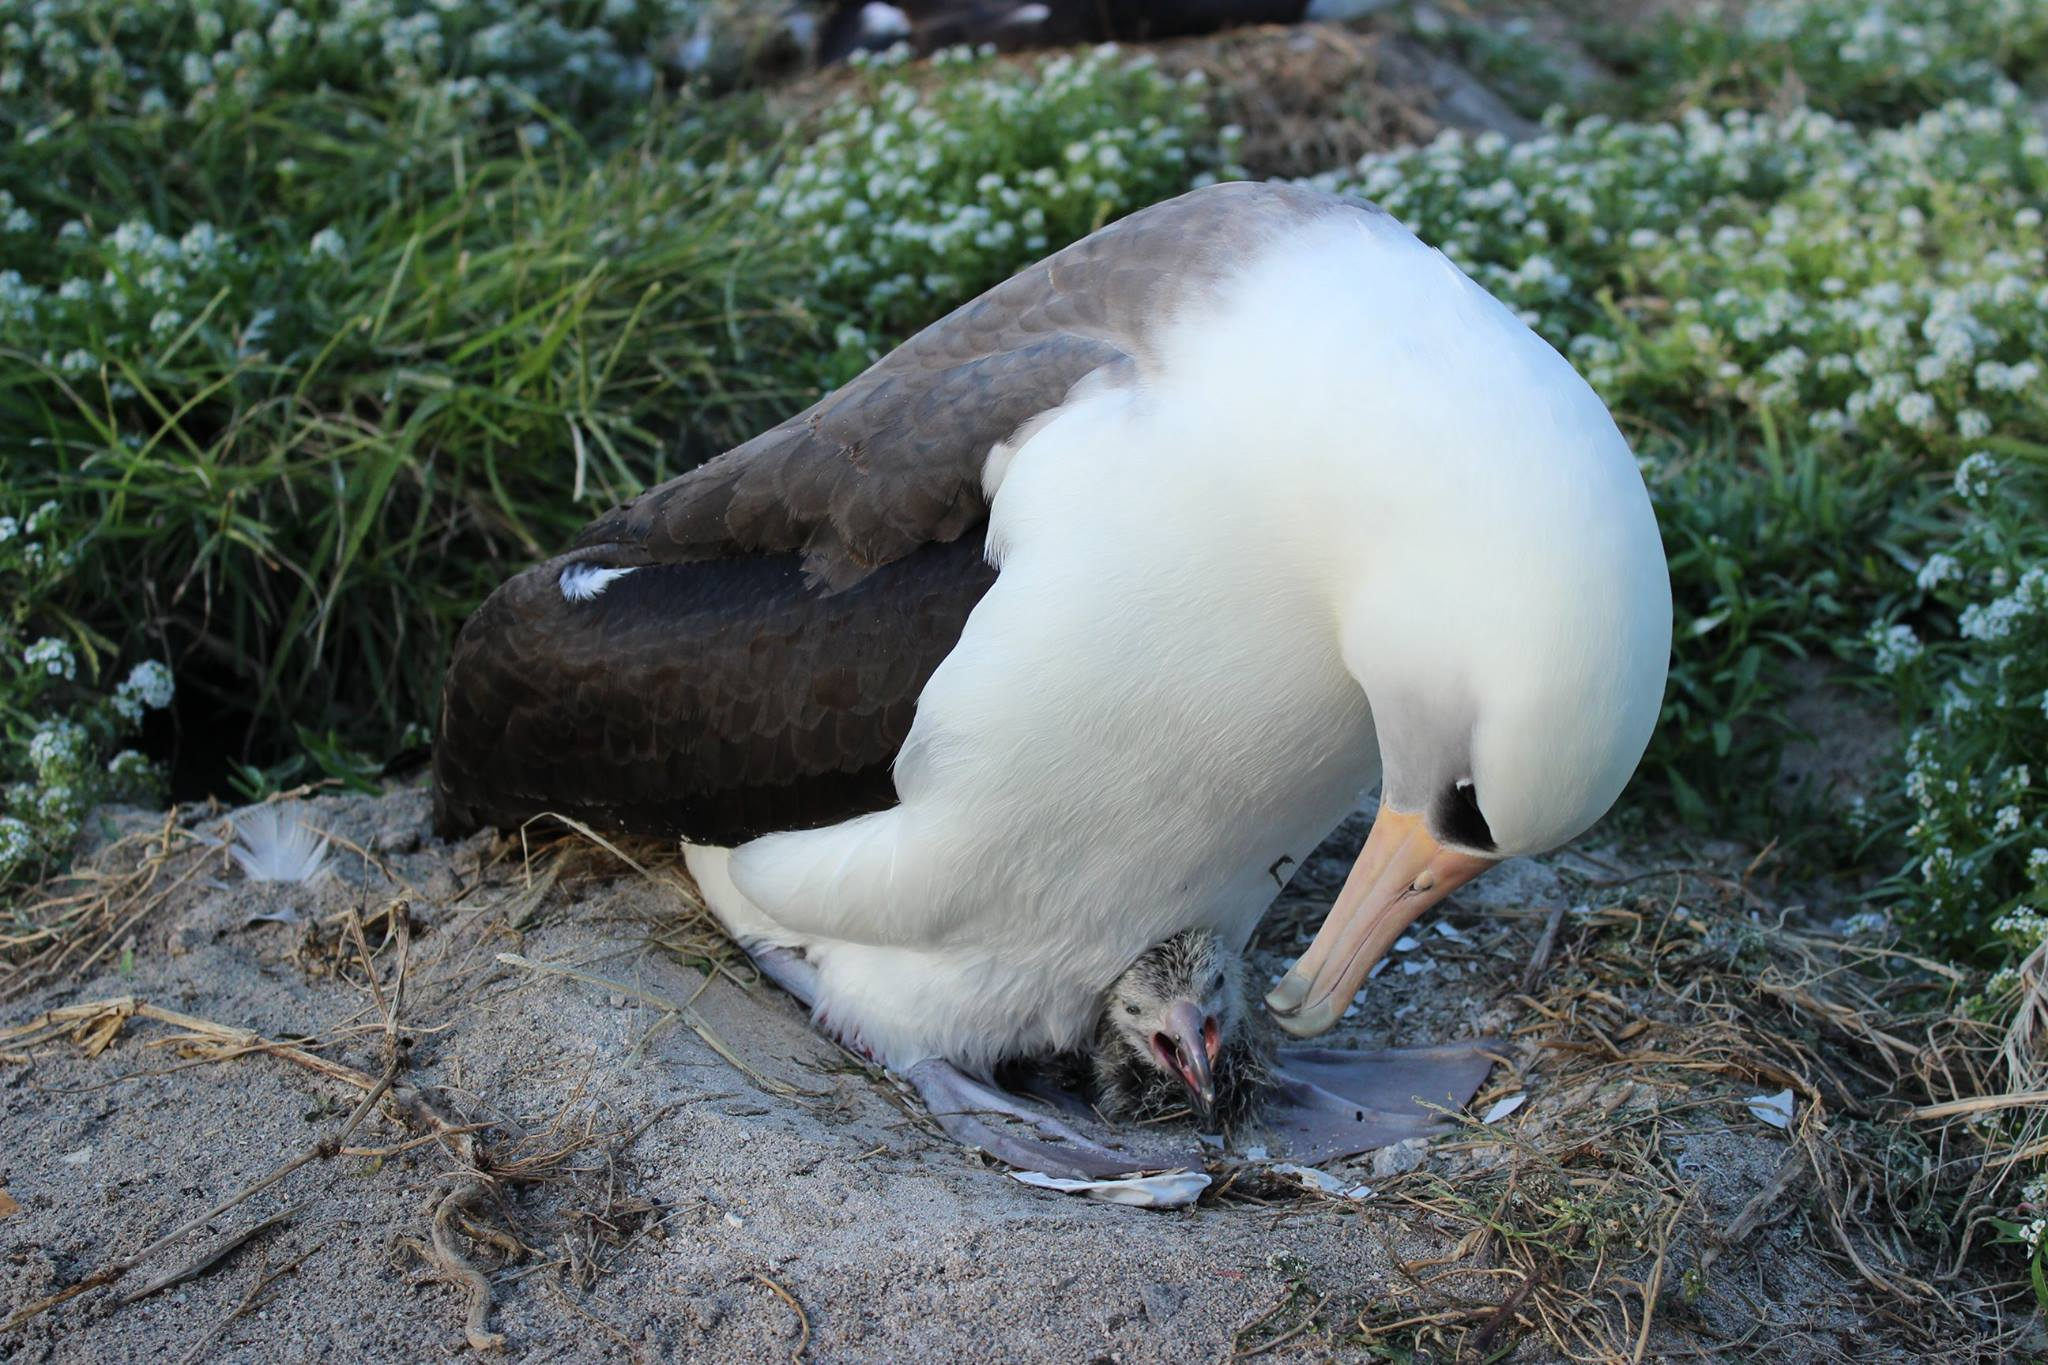 World's oldest wild bird gives birth at age 63